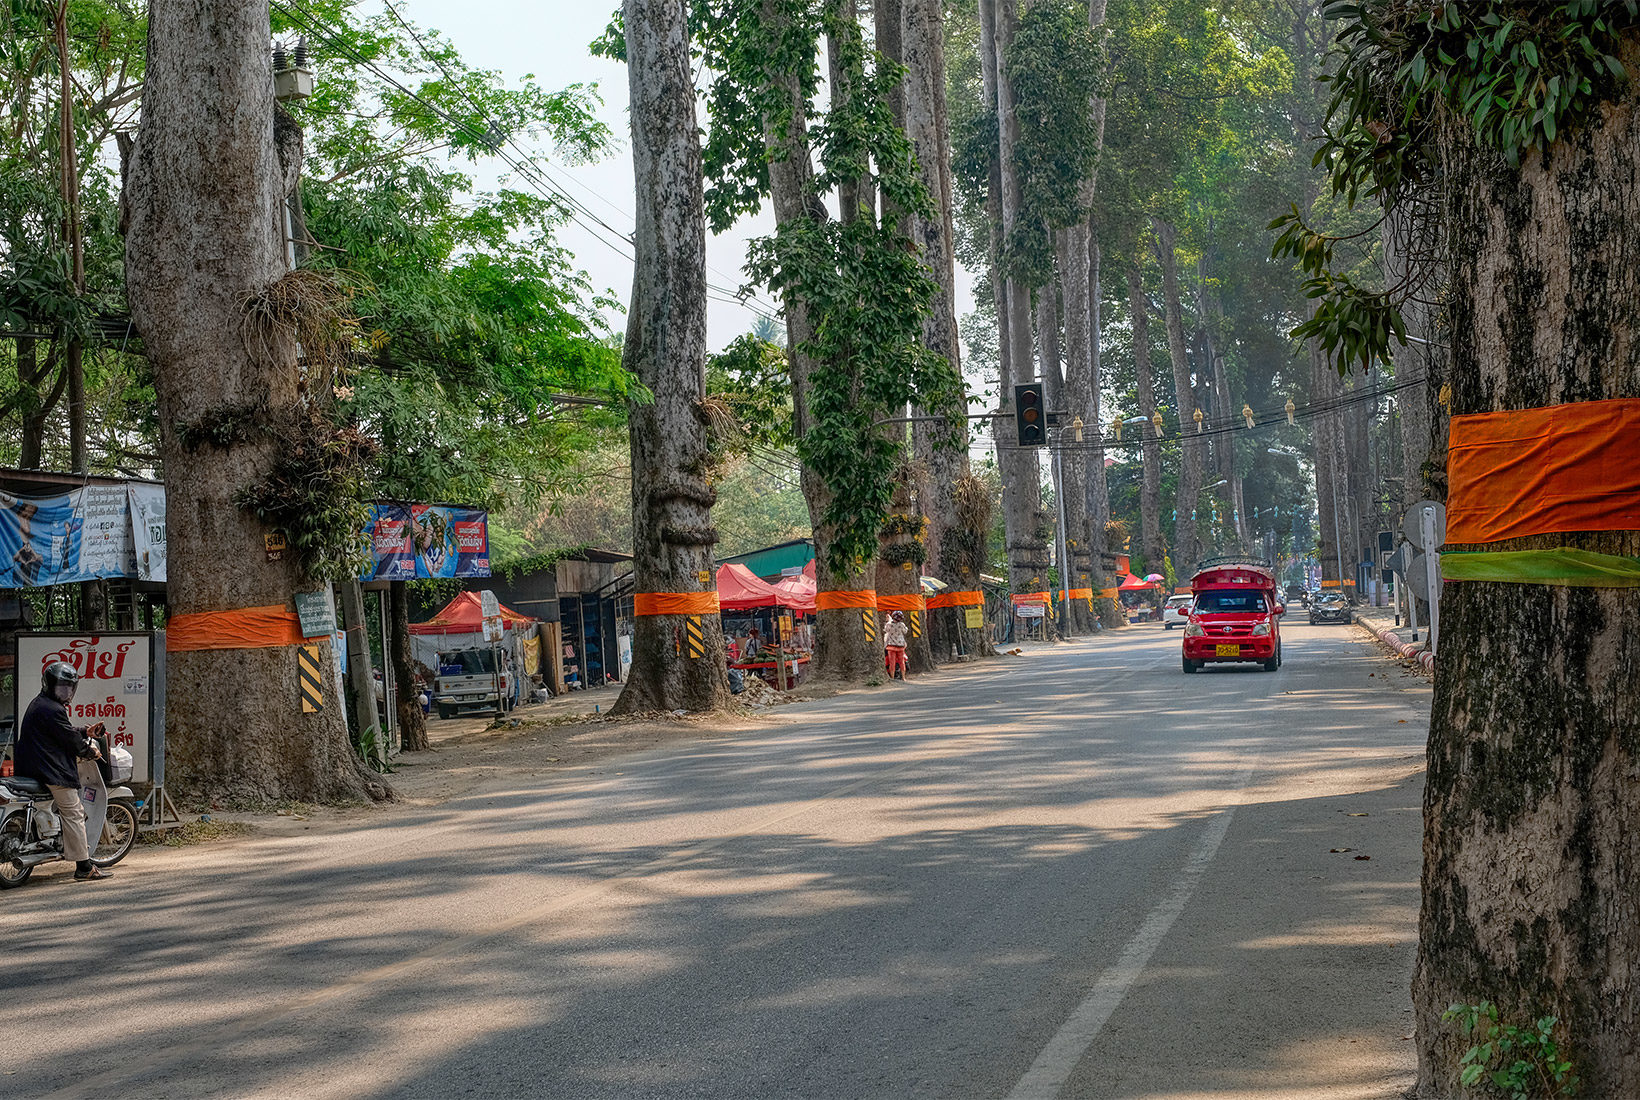 A solitary Songtheow (red passenger truck) passes by a stand of ordained Dton Yaang Naa trees